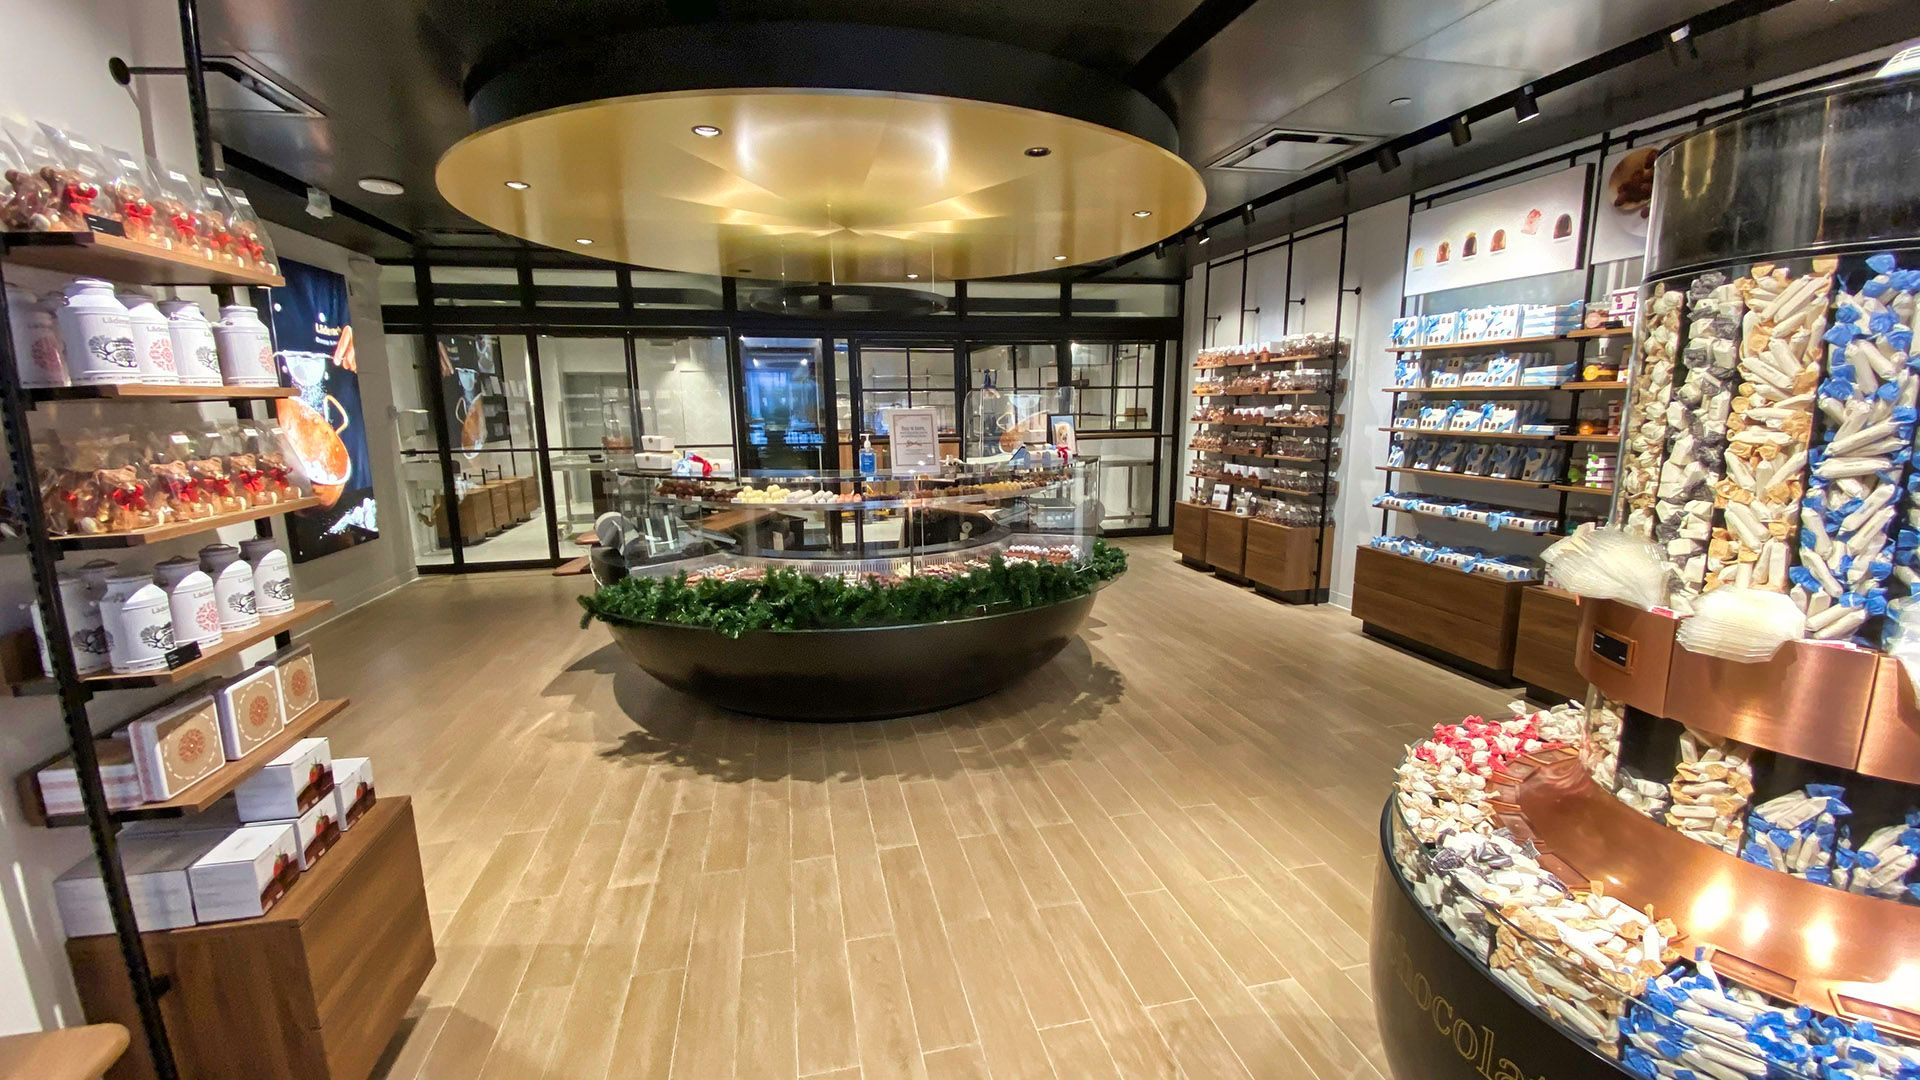 Läderach Opens NYC Flagship Location